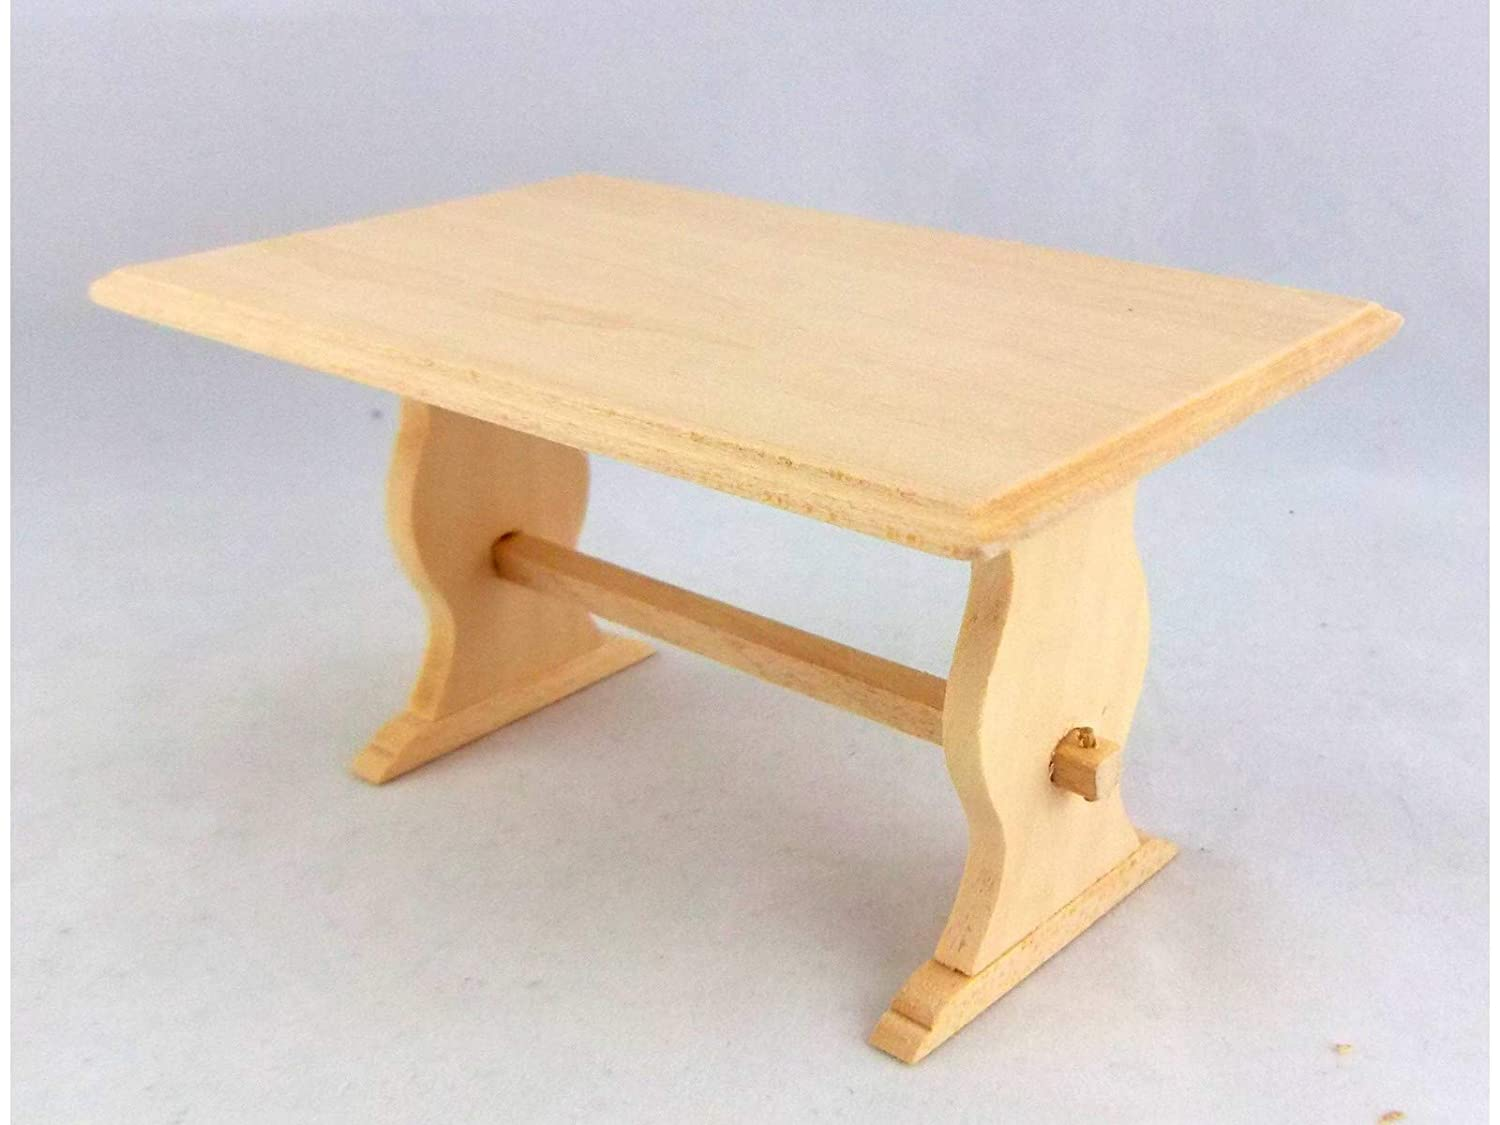 Unpainted Dollhouse Miniature Furniture Wooden Table Kitchen Room Table 1:12